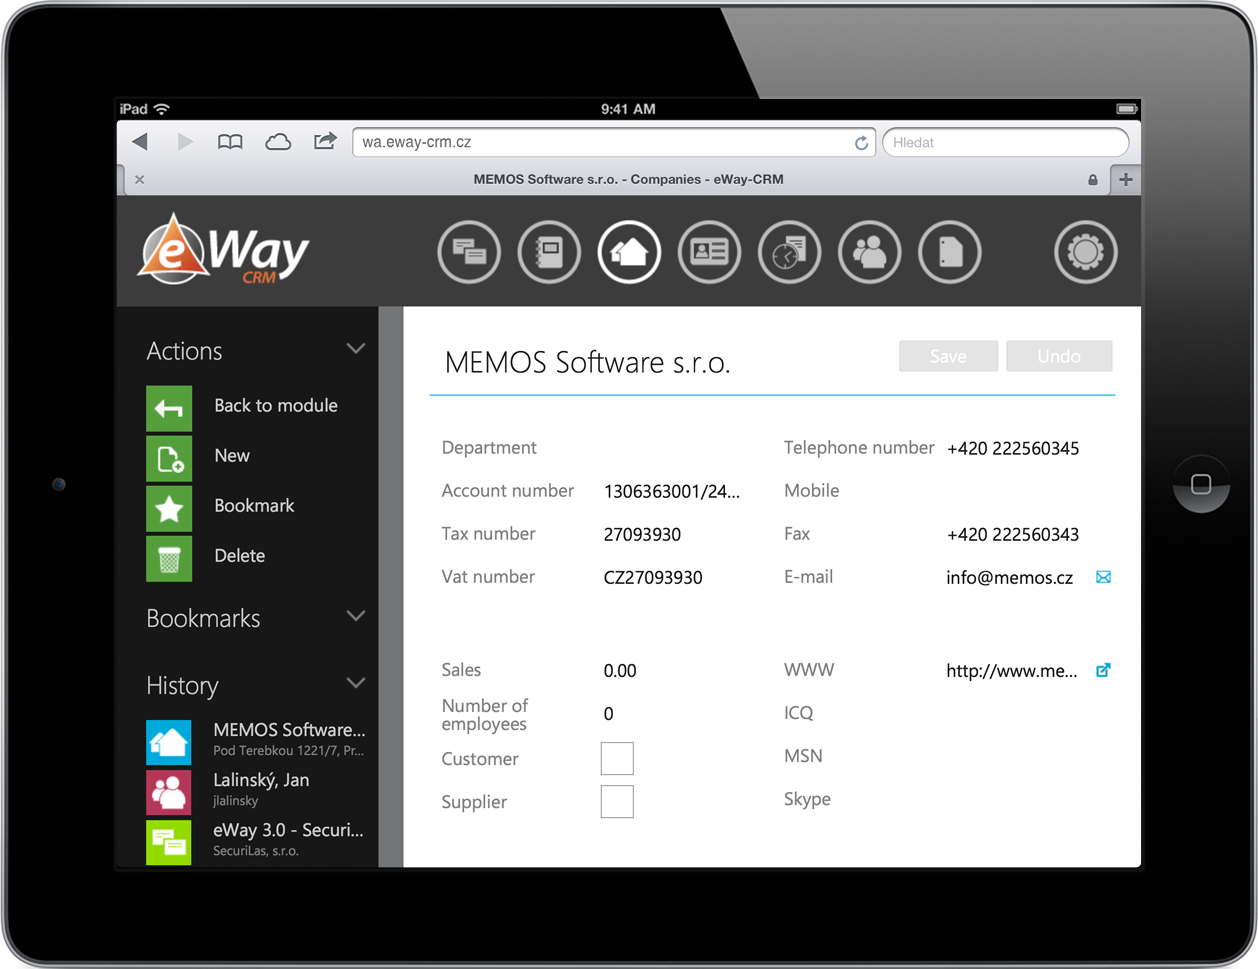 Companies in eWay-CRM Web Access